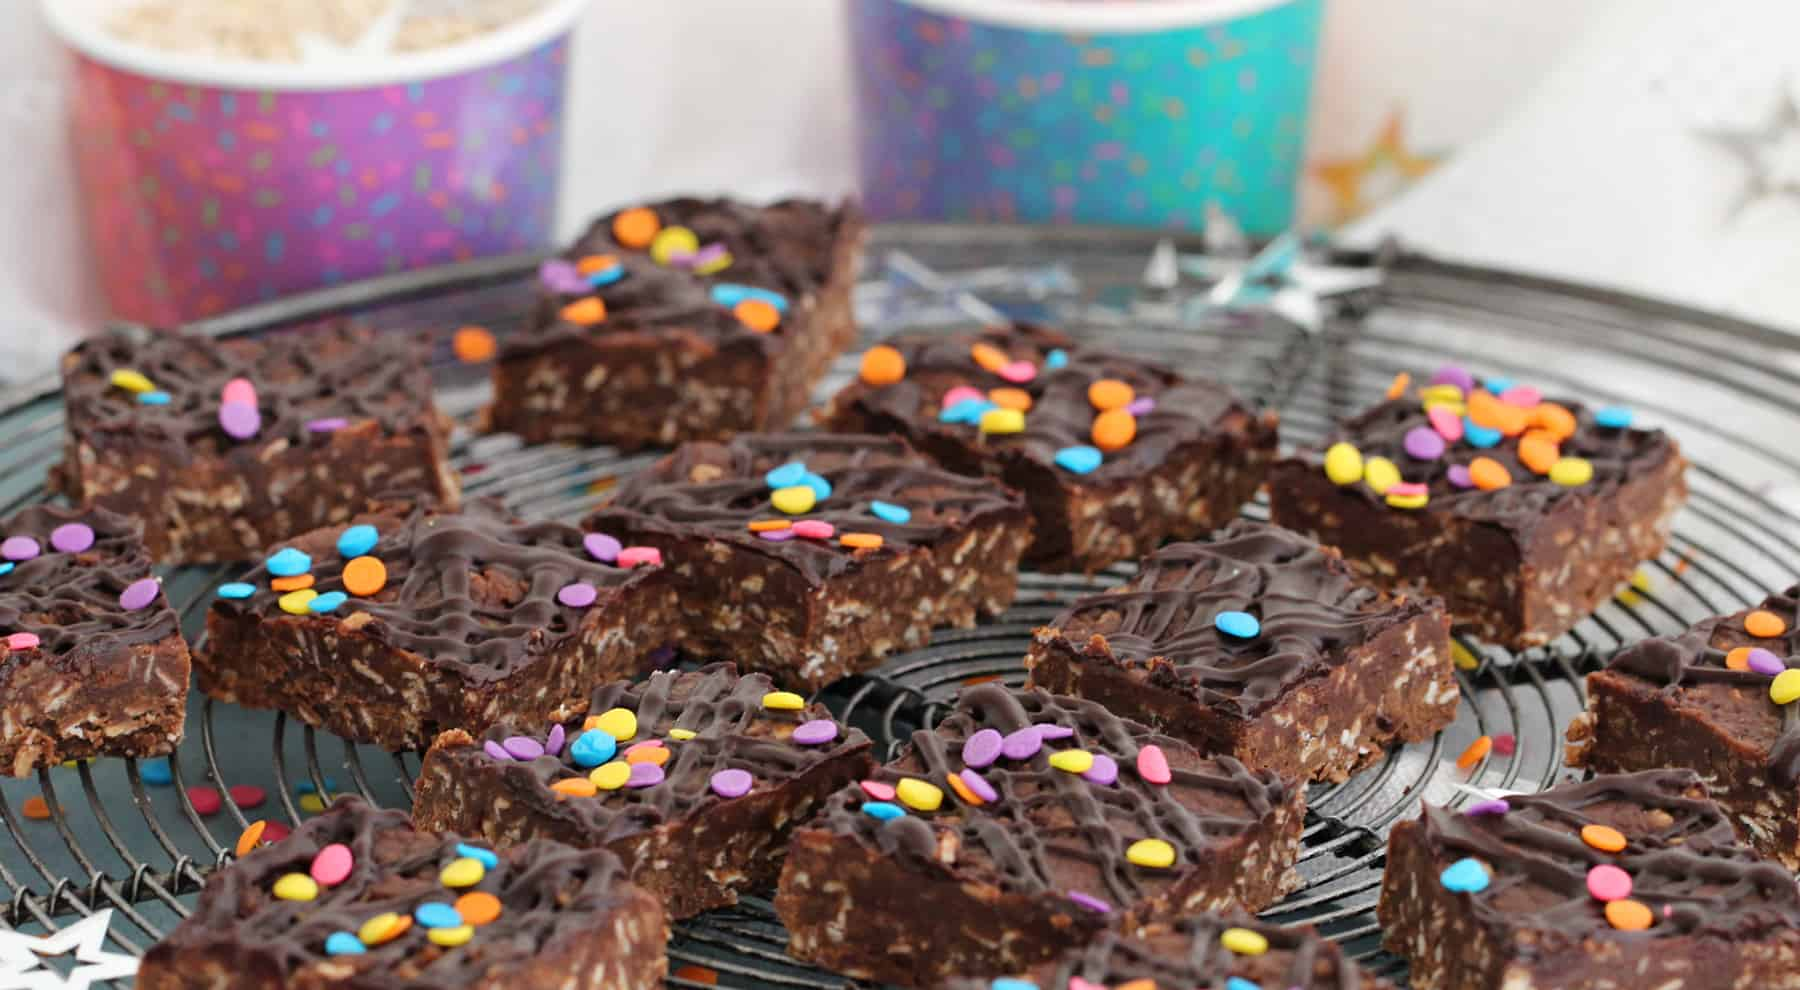 No-bake chocolate peanut butter cookie oat bars on wire rack, paper cups, confetti